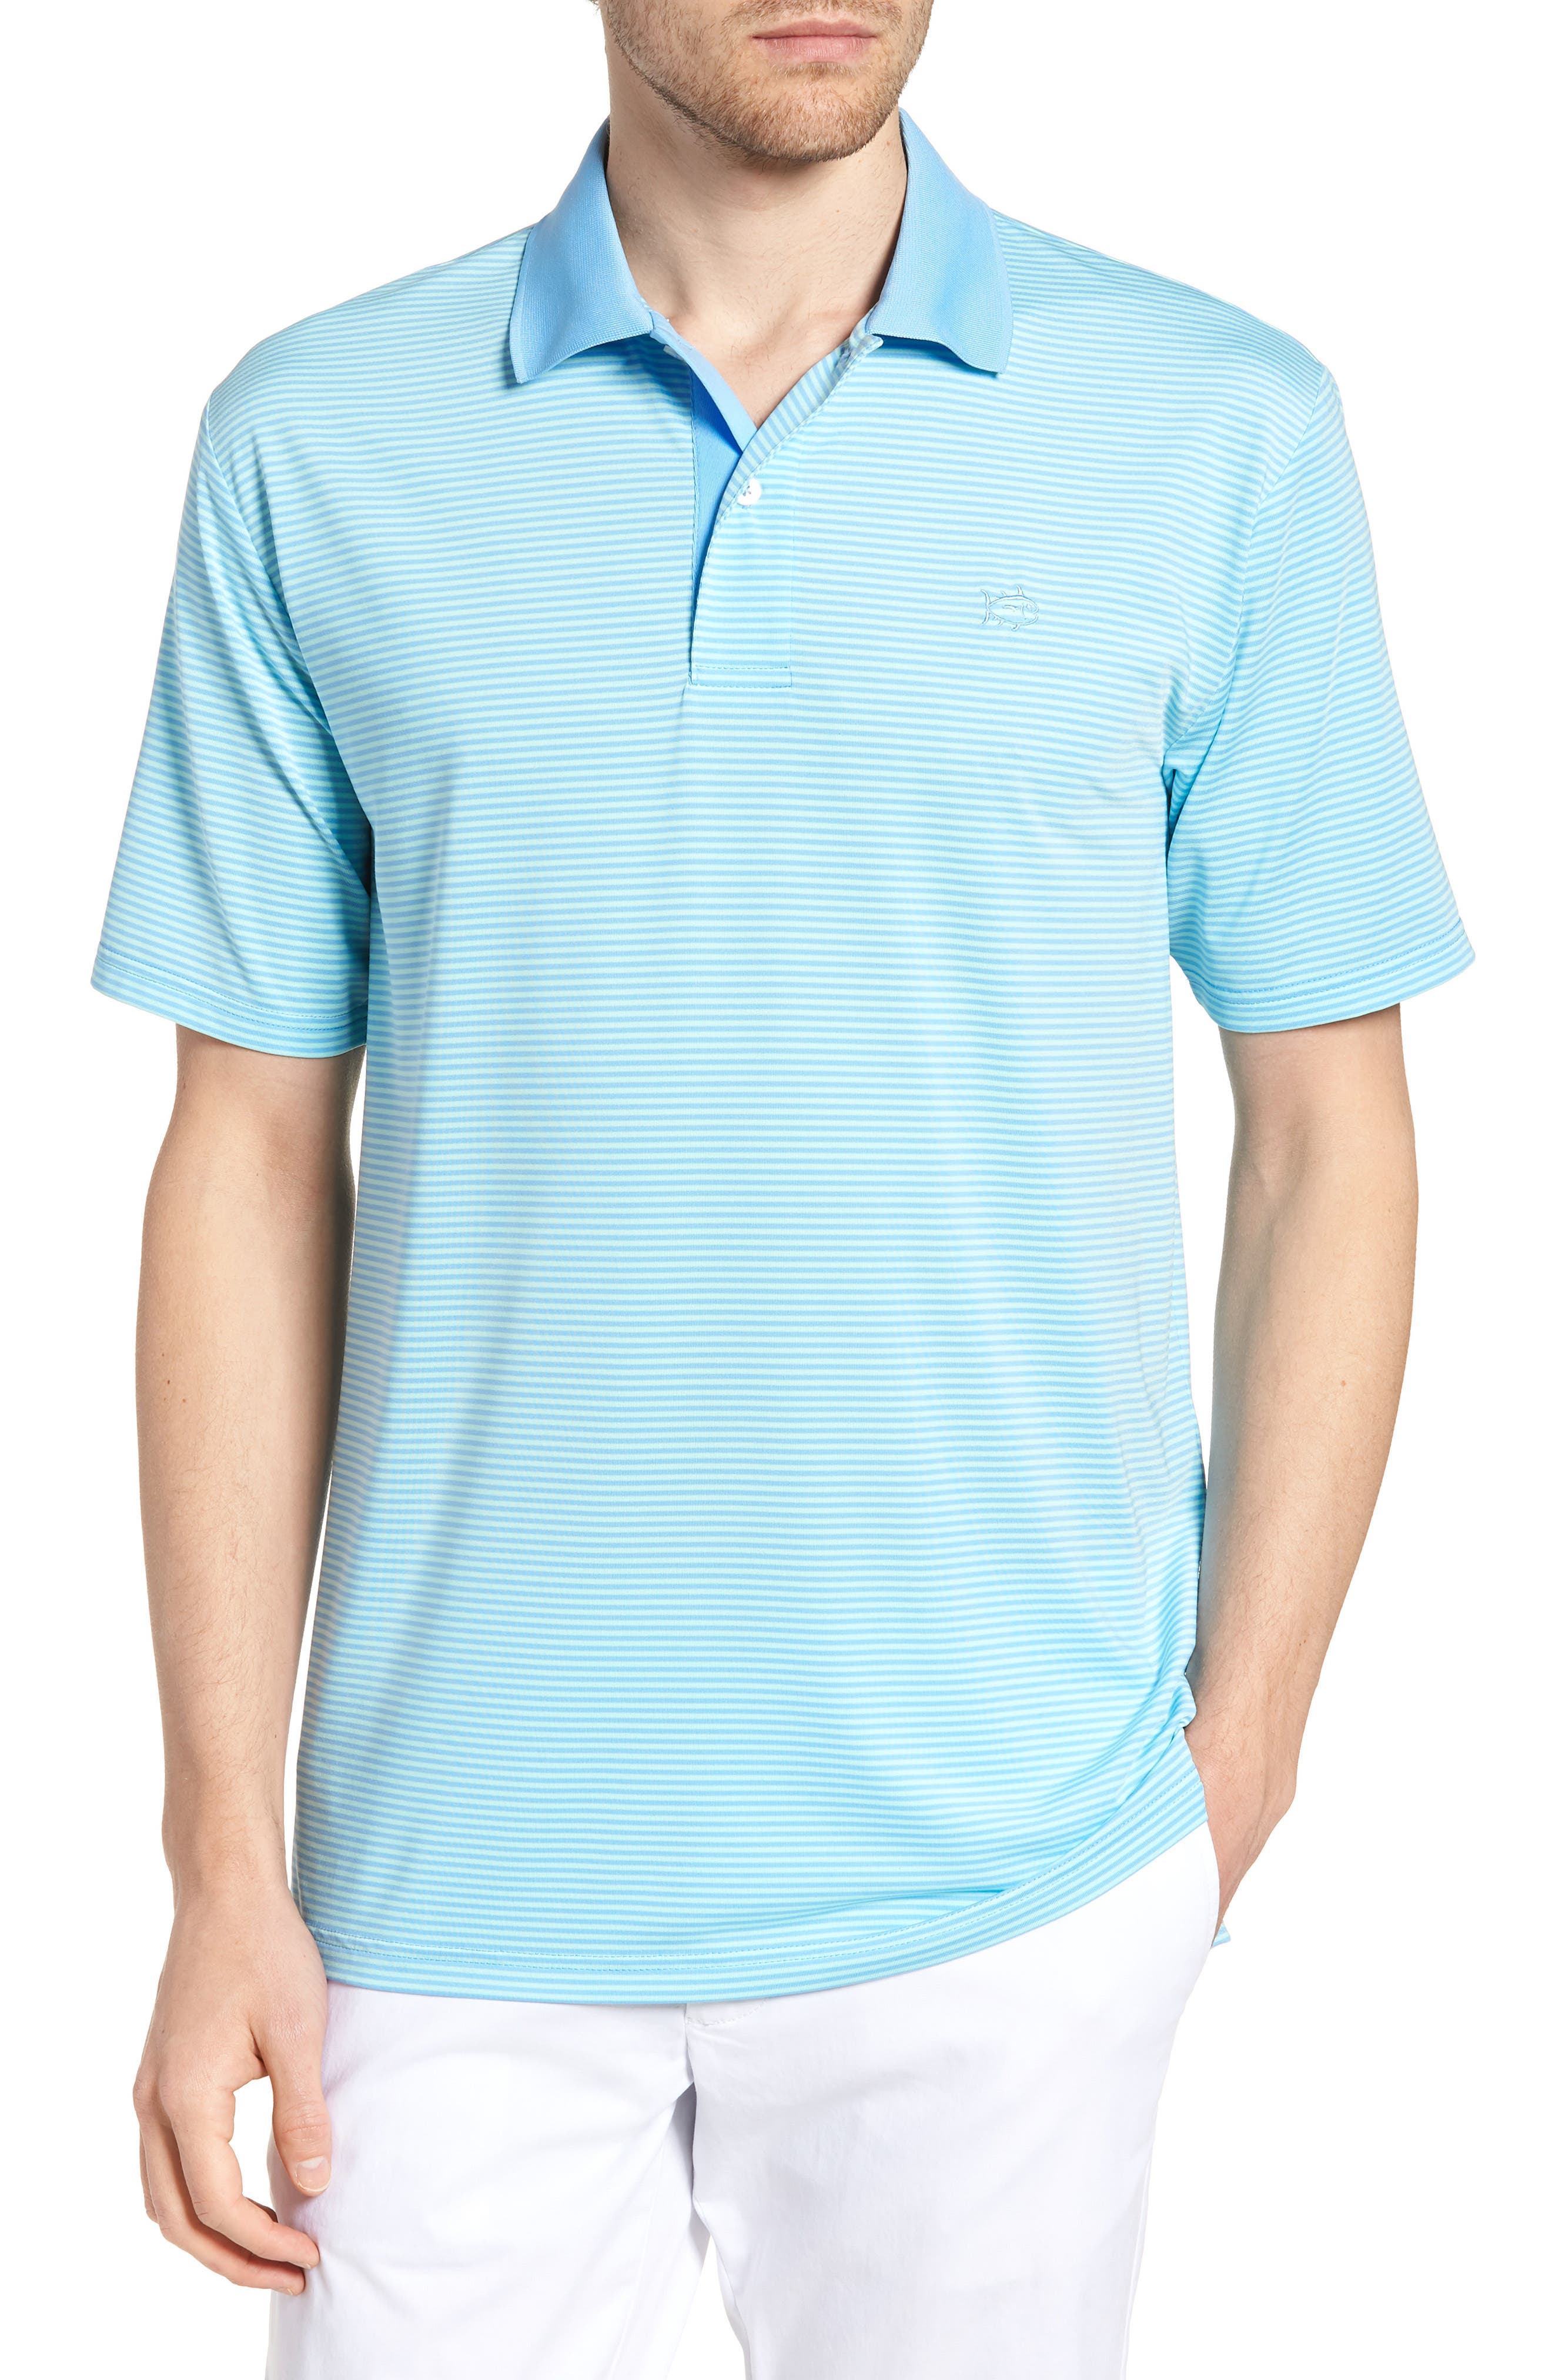 Southern Tide Regular Fit Feeder Stripe Performance Polo